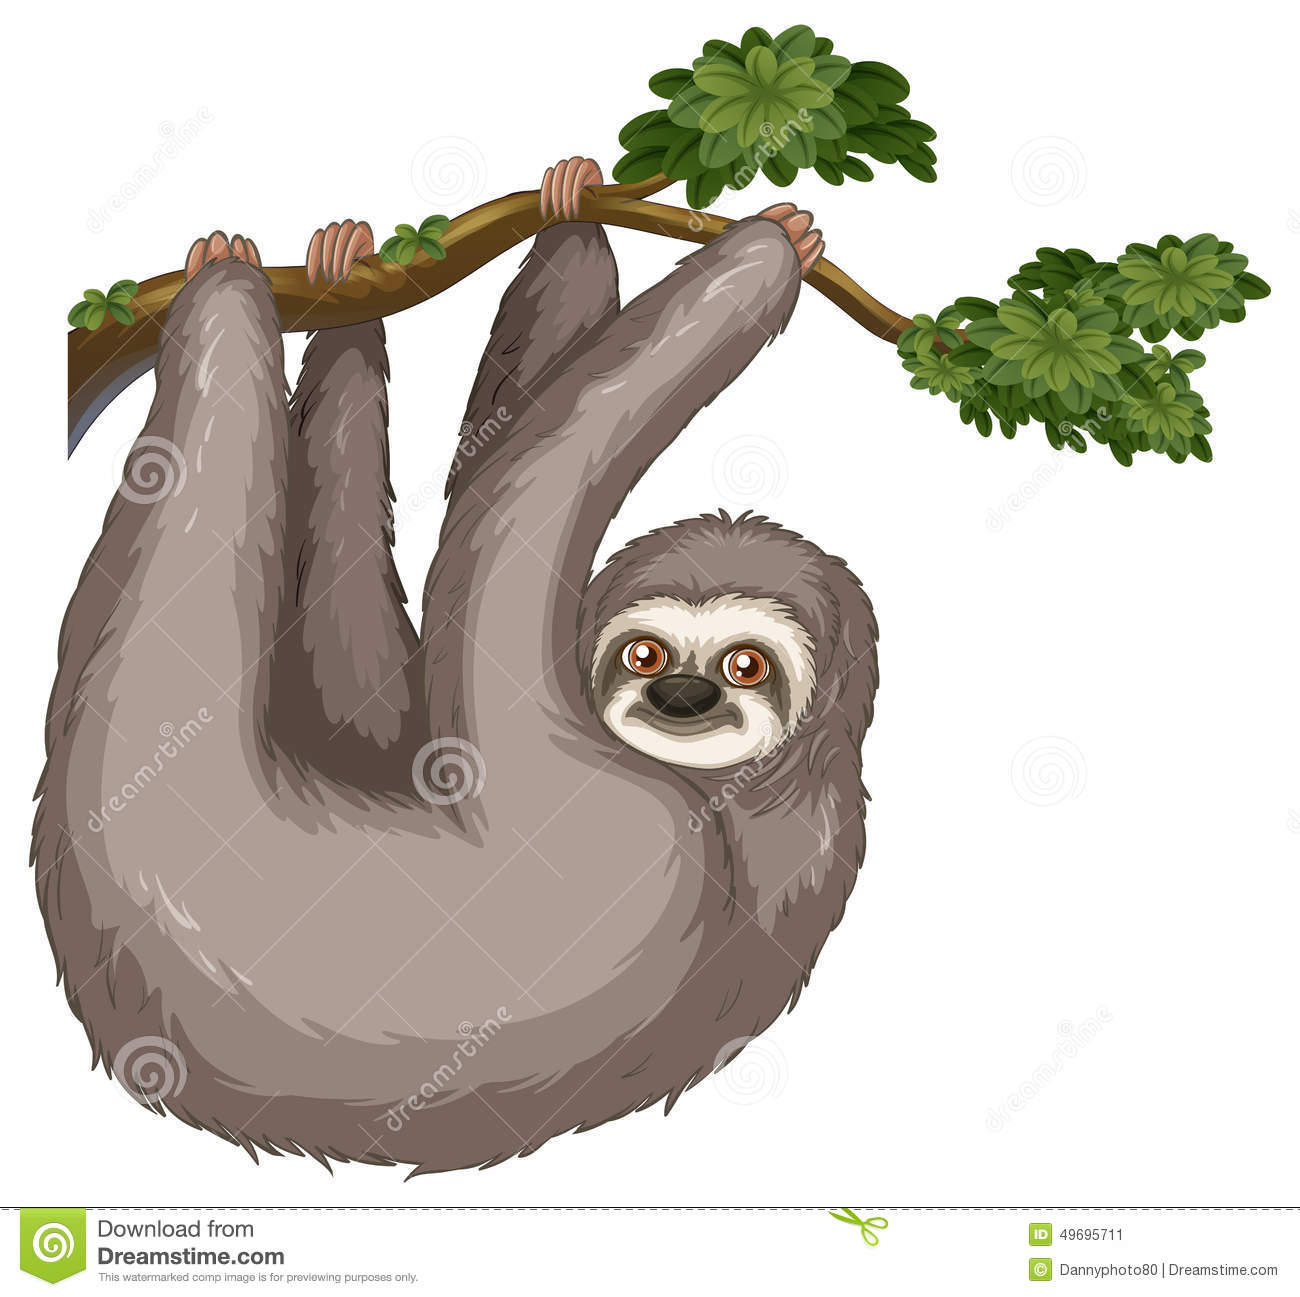 Sloth Stock Vector - Image: 49695711